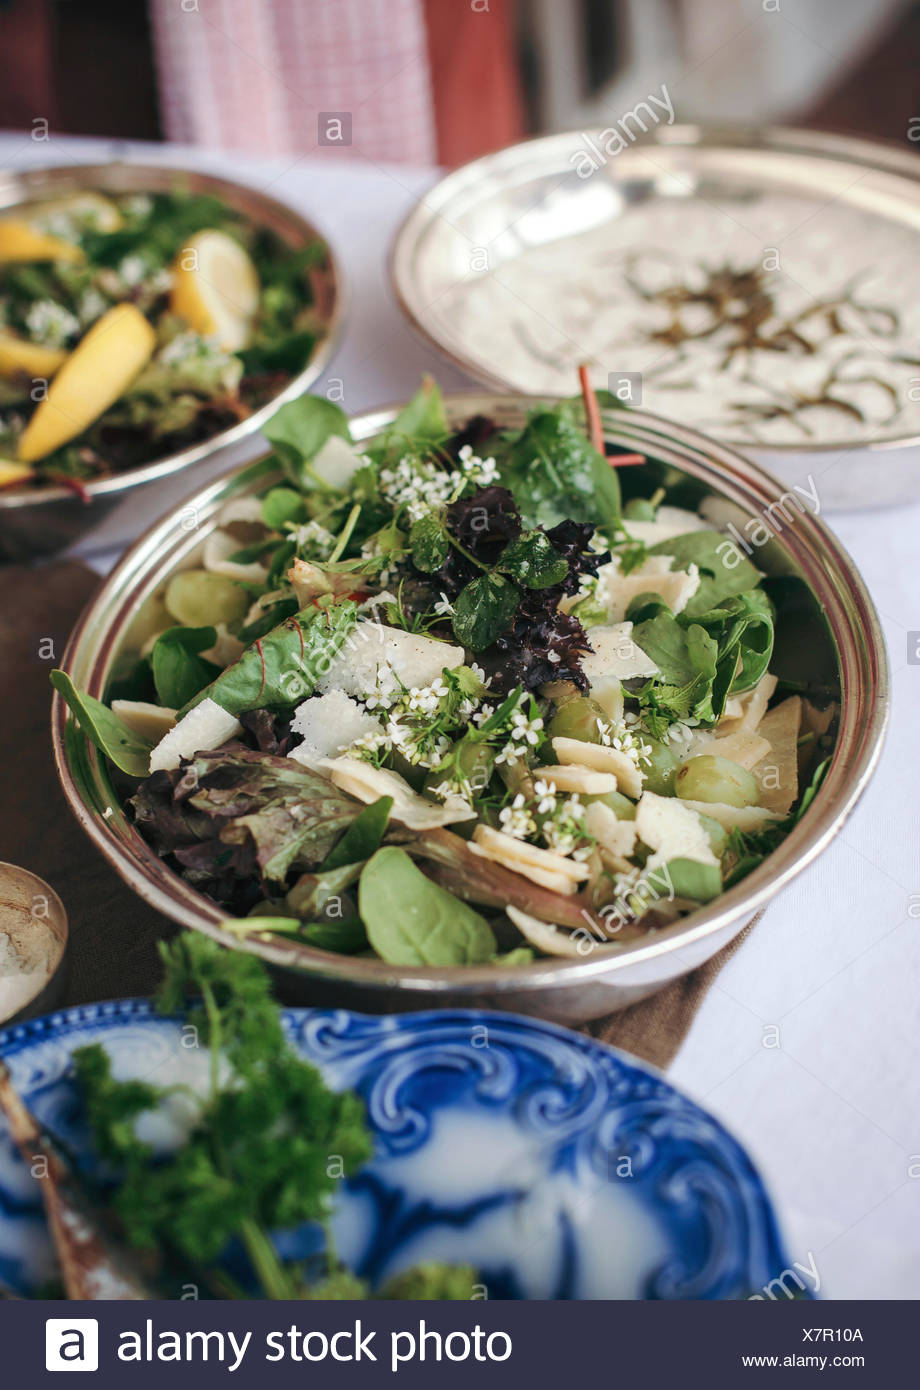 Mixed greens, grapes and Parmesan cheese salad for summer lunch - Stock Image